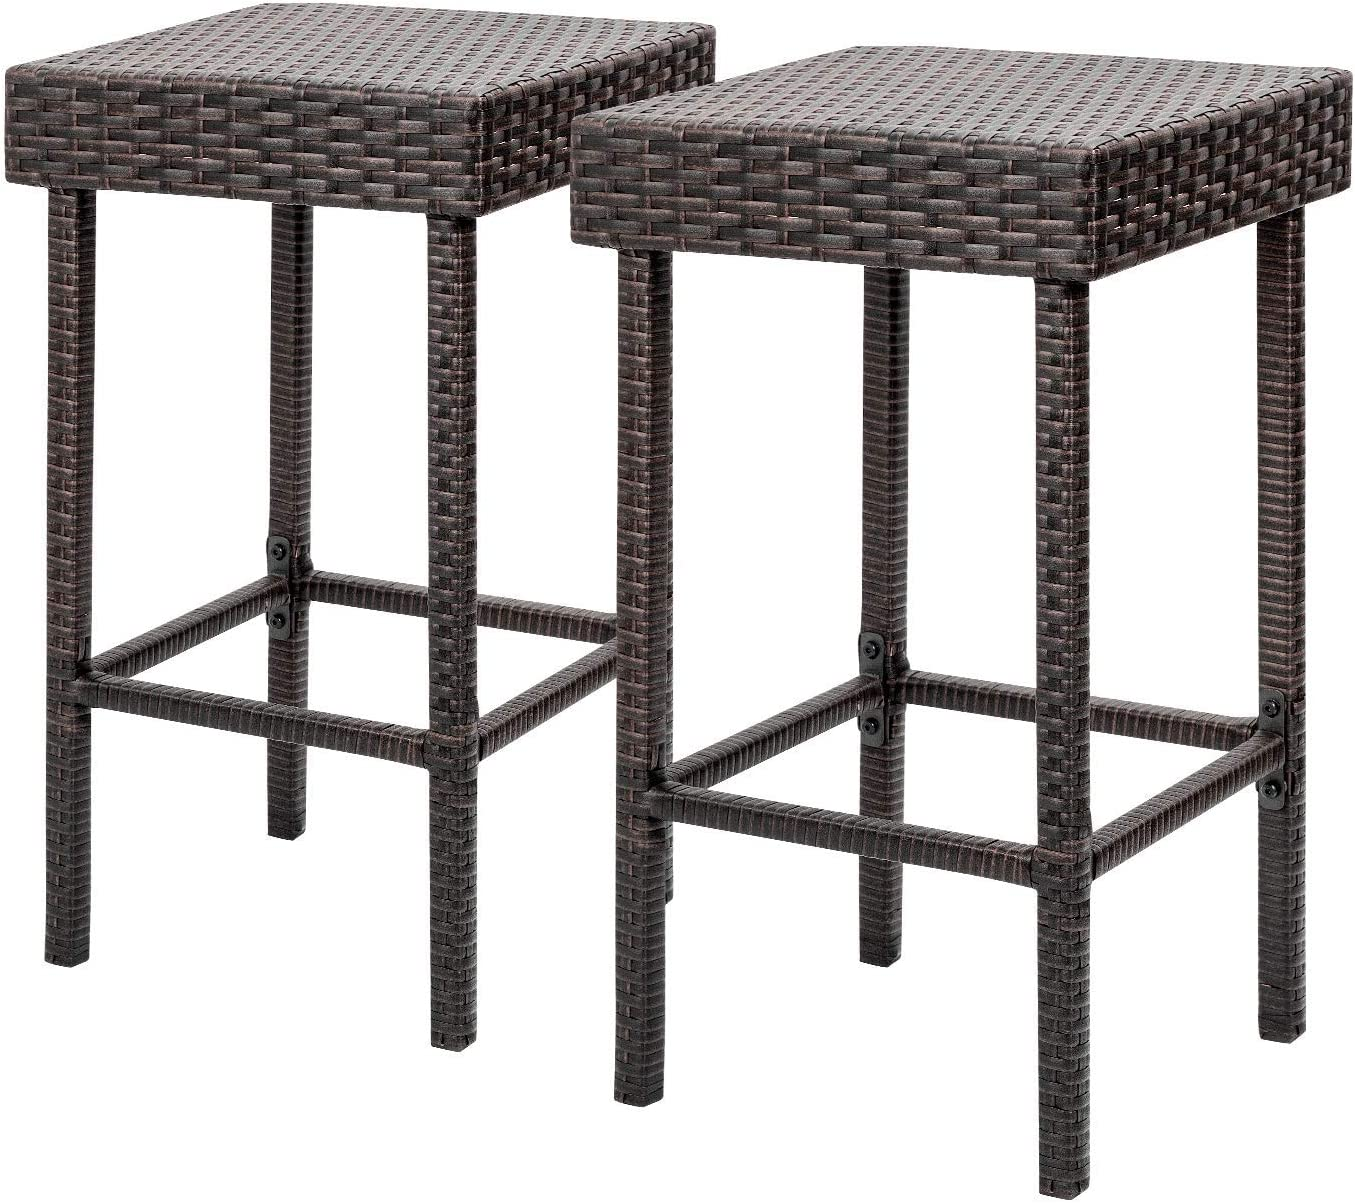 Flamaker Brown Wicker Barstool Outdoor Patio Furniture Bar Stools Set of 2 Height Bar Chairs High Backless Stools Rattan Dining Chairs